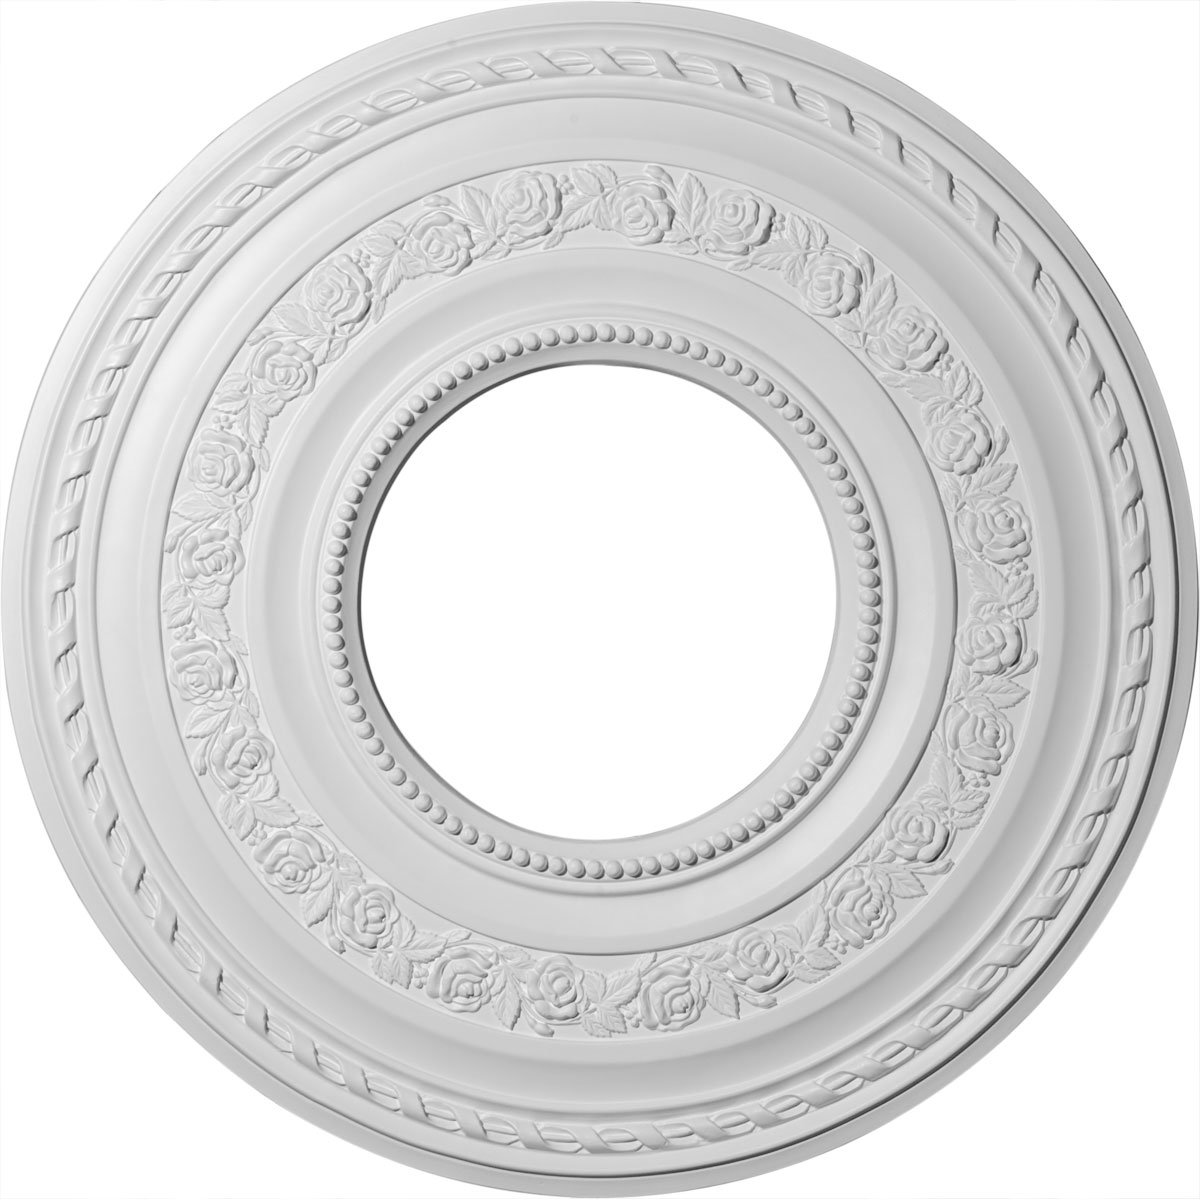 Ekena Millwork CM29AT 29 3/8-Inch OD x 11 5/8-Inch ID Anthony Ceiling Medallion